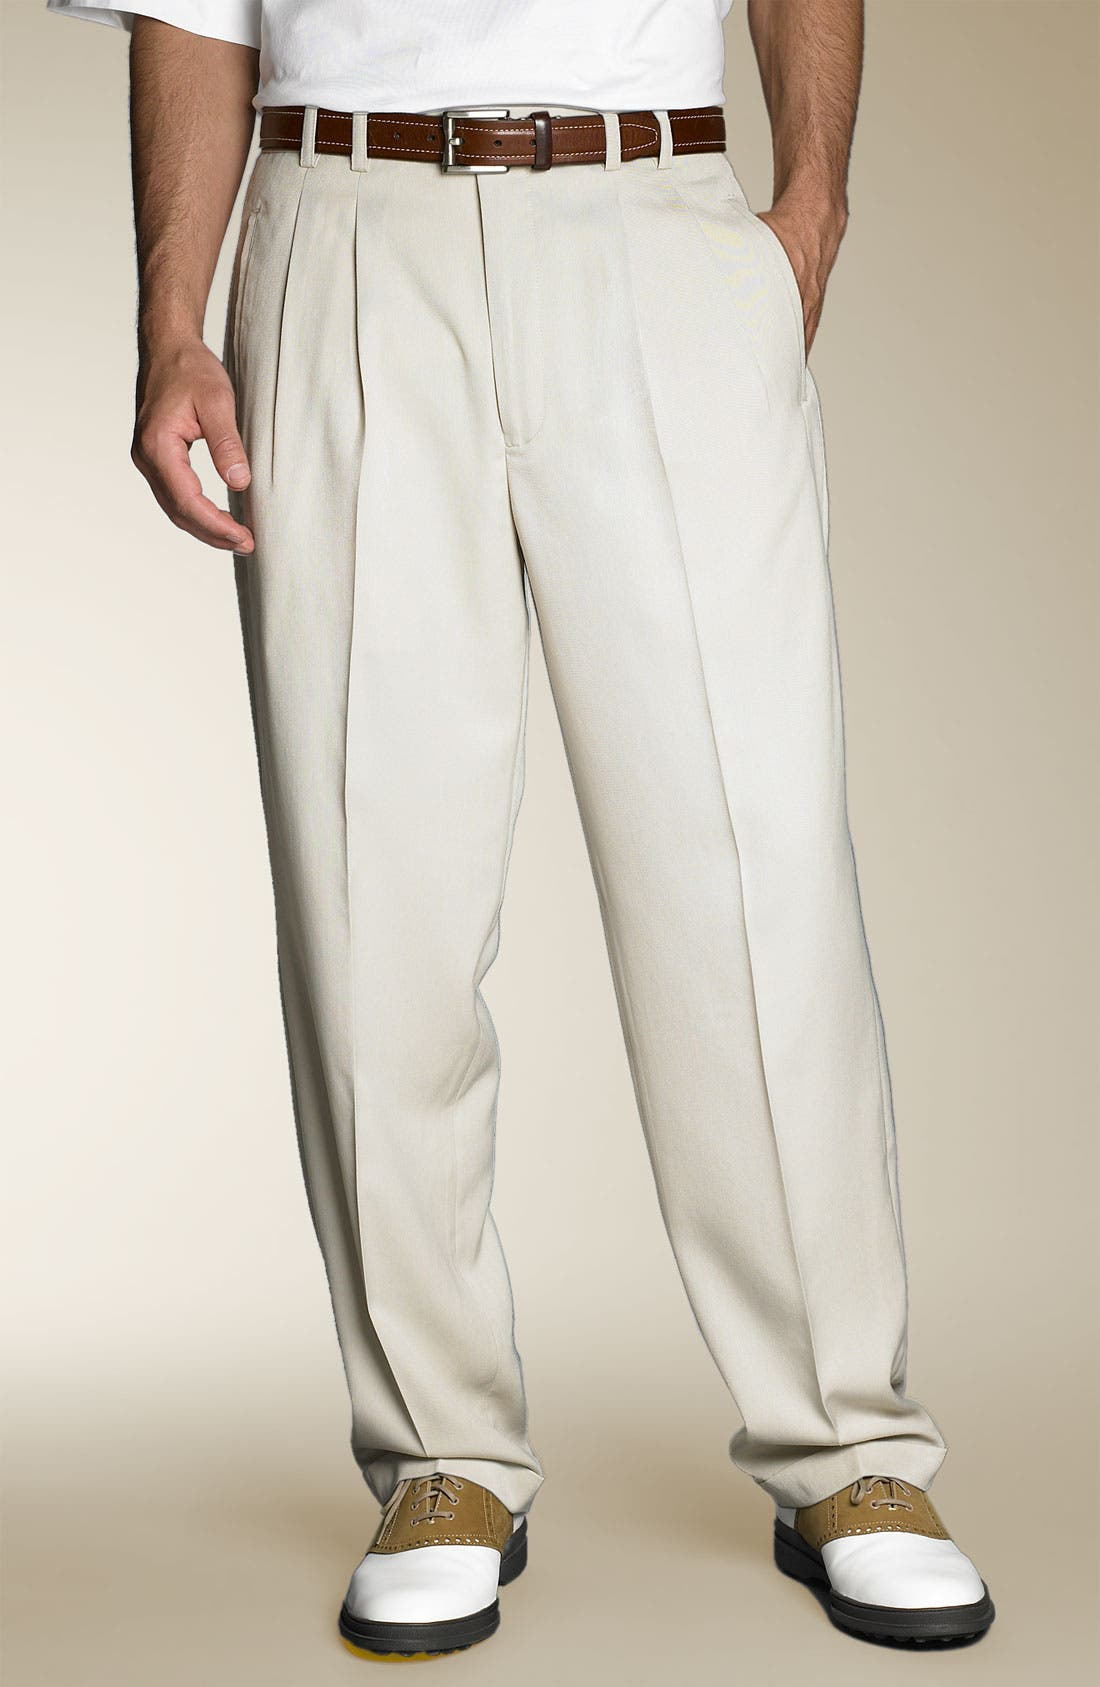 Main Image - Cutter & Buck Gabardine Pleated Microfiber Cuffed Trousers (Big & Tall)